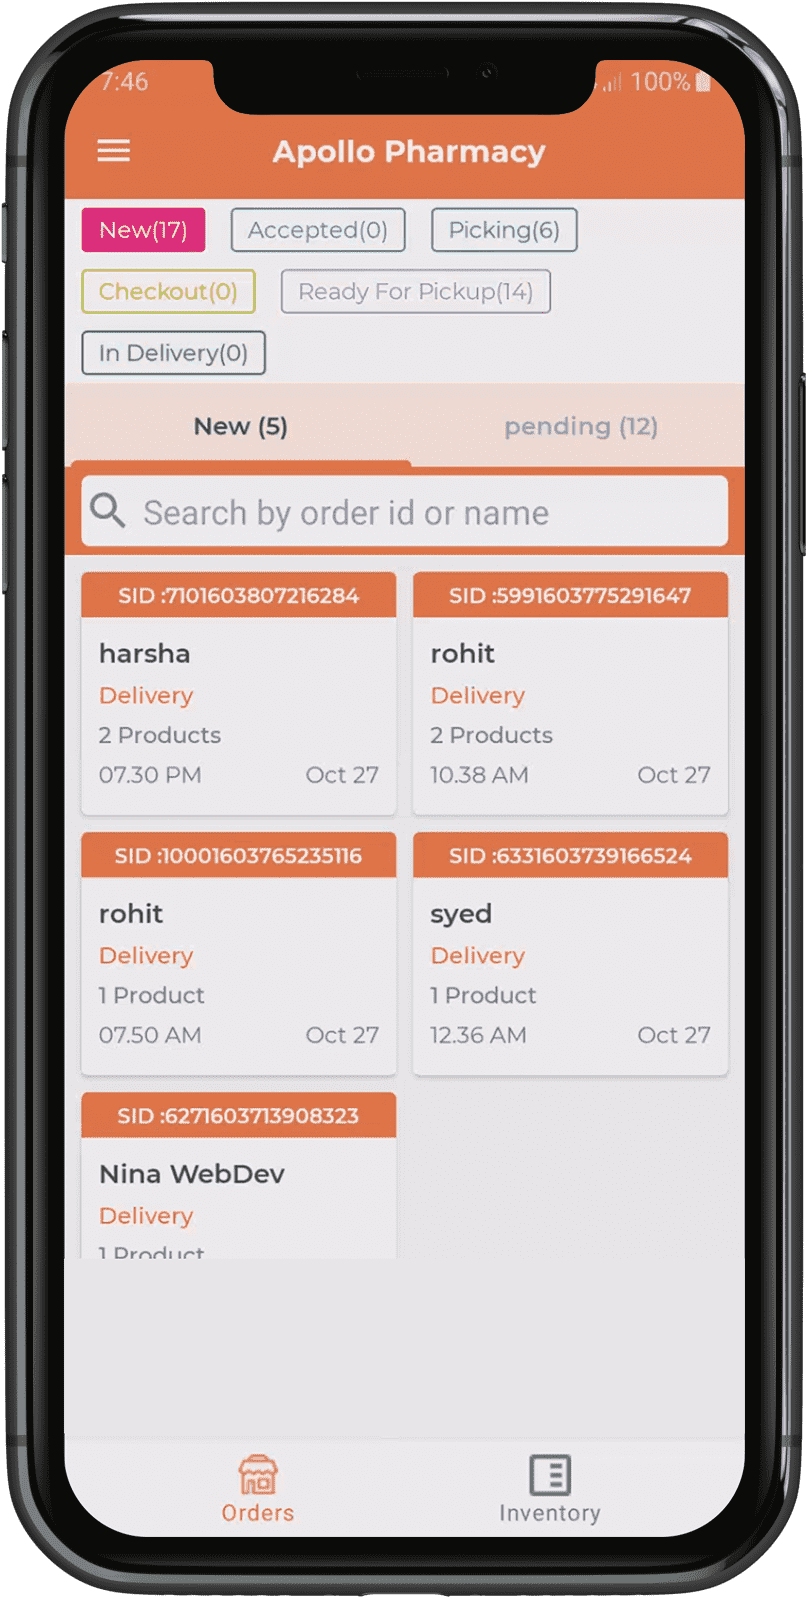 new-order-section-in-medicine-delivery-picker-app.png